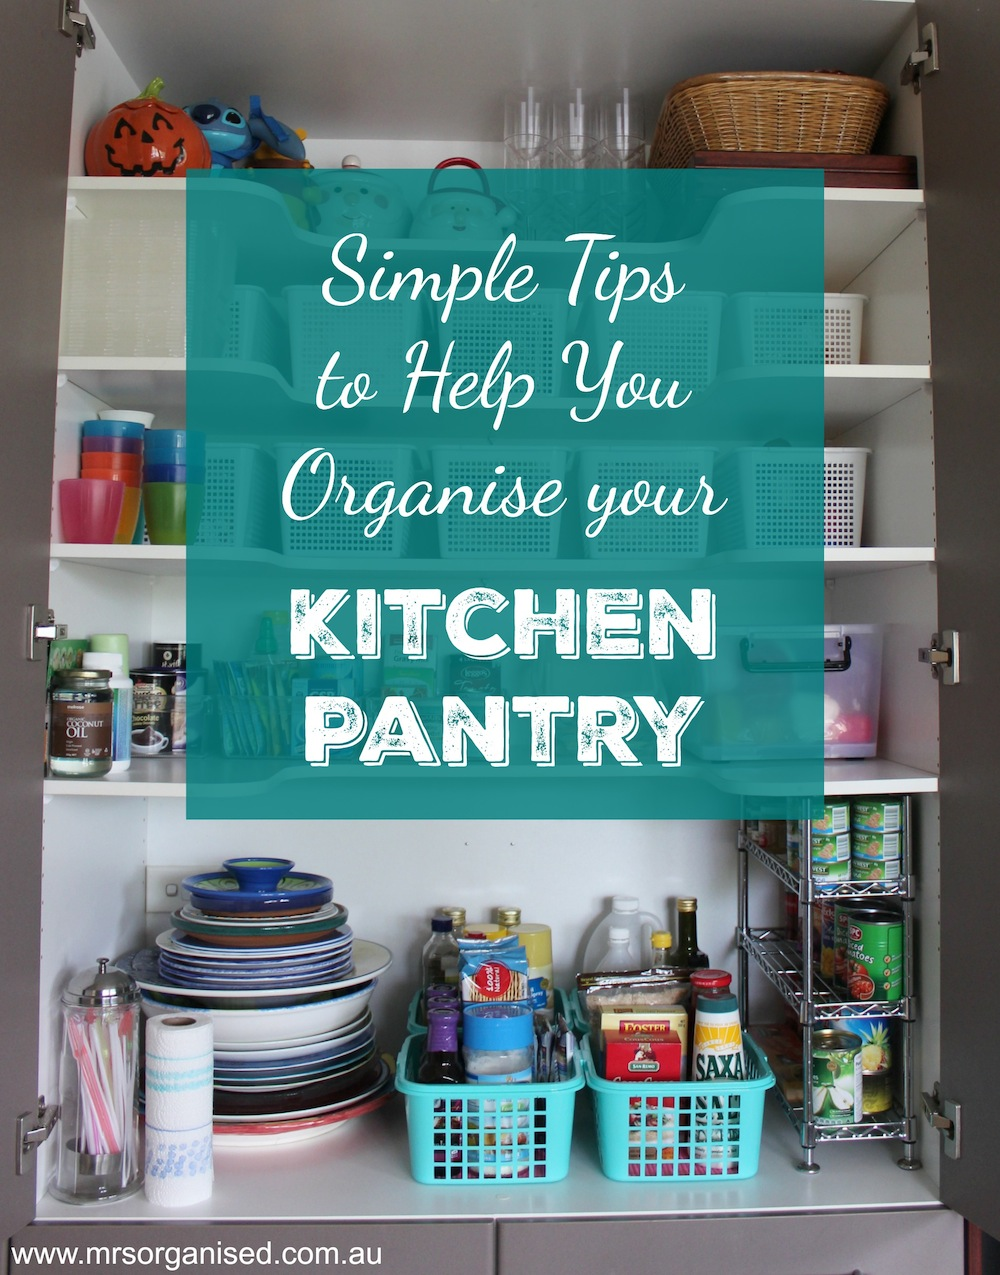 Simple Tips to Help you Organise the Kitchen Pantry 001